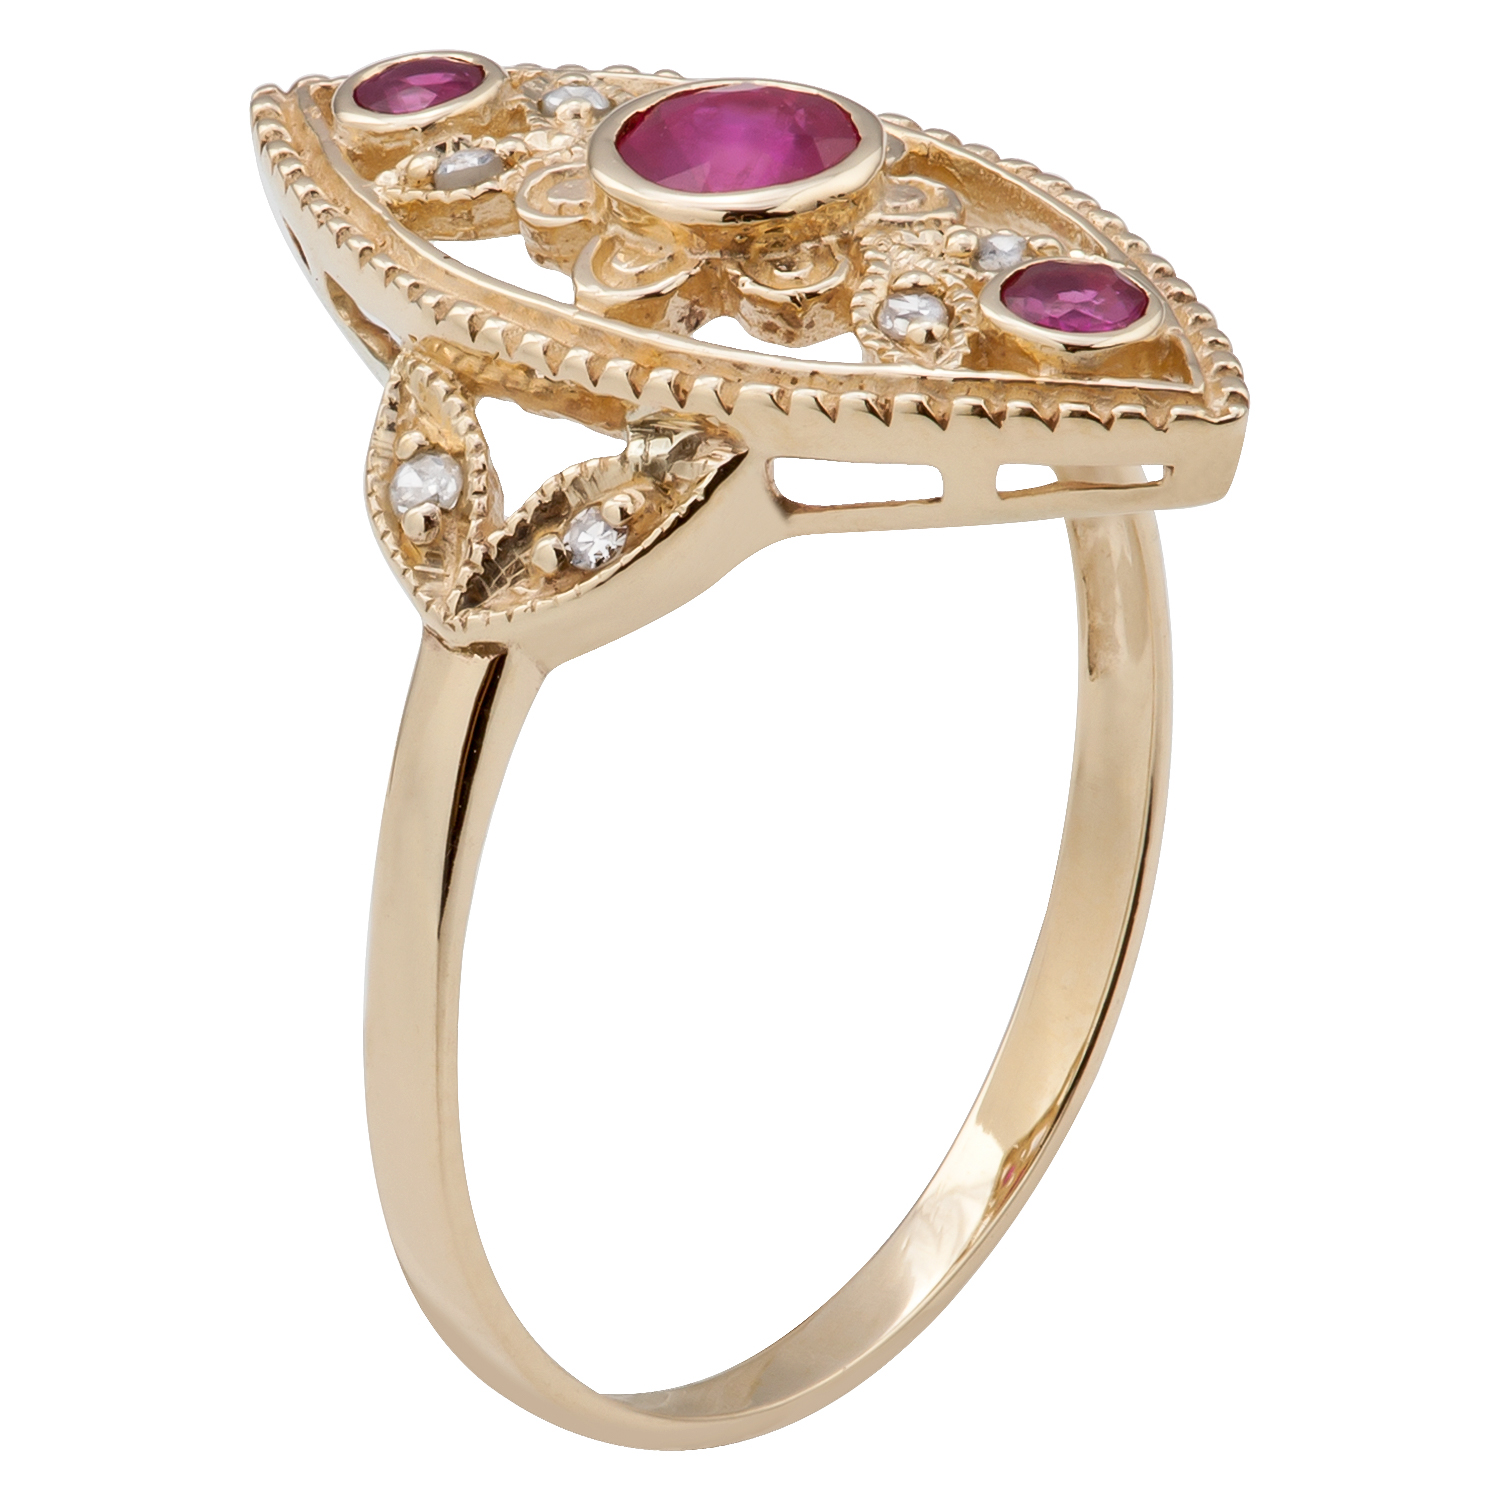 10k yellow gold vintage style genuine round ruby and diamond ring ebay. Black Bedroom Furniture Sets. Home Design Ideas